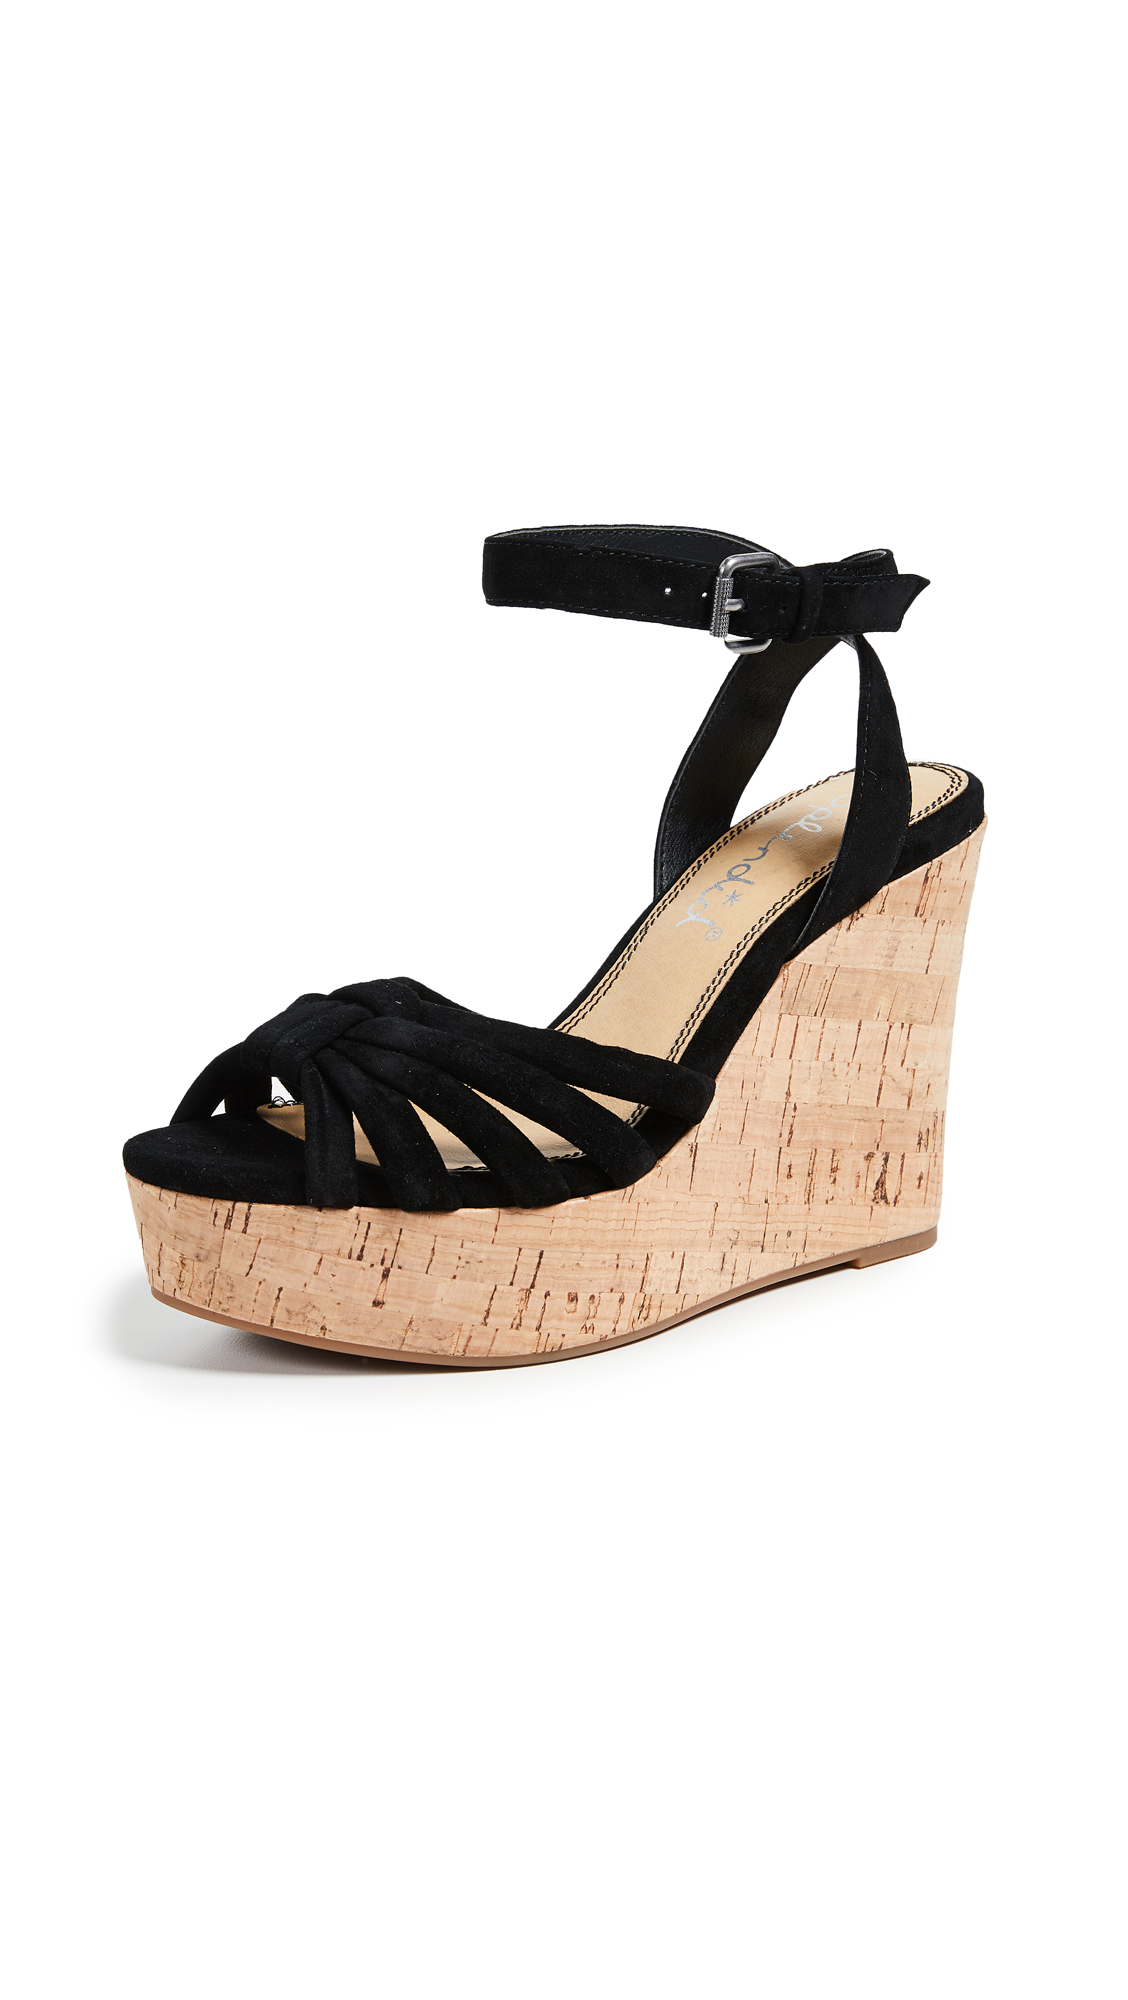 Splendid Fallon Wedge Sandals - Black